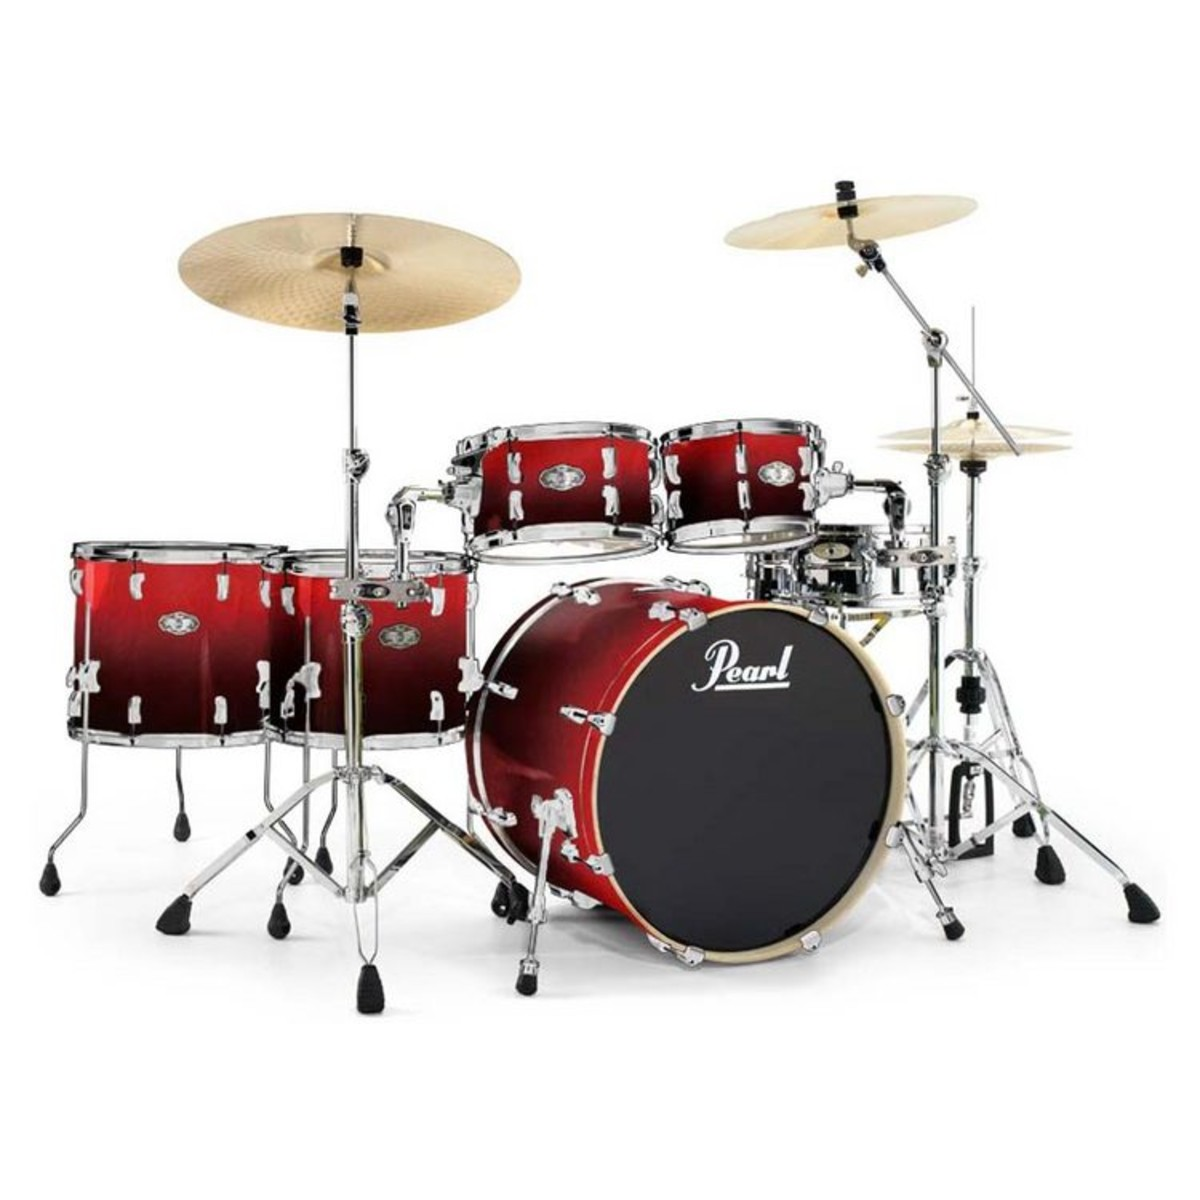 DISC Pearl Vision VBX Hyperdrive Birch Kit In Ruby Fade